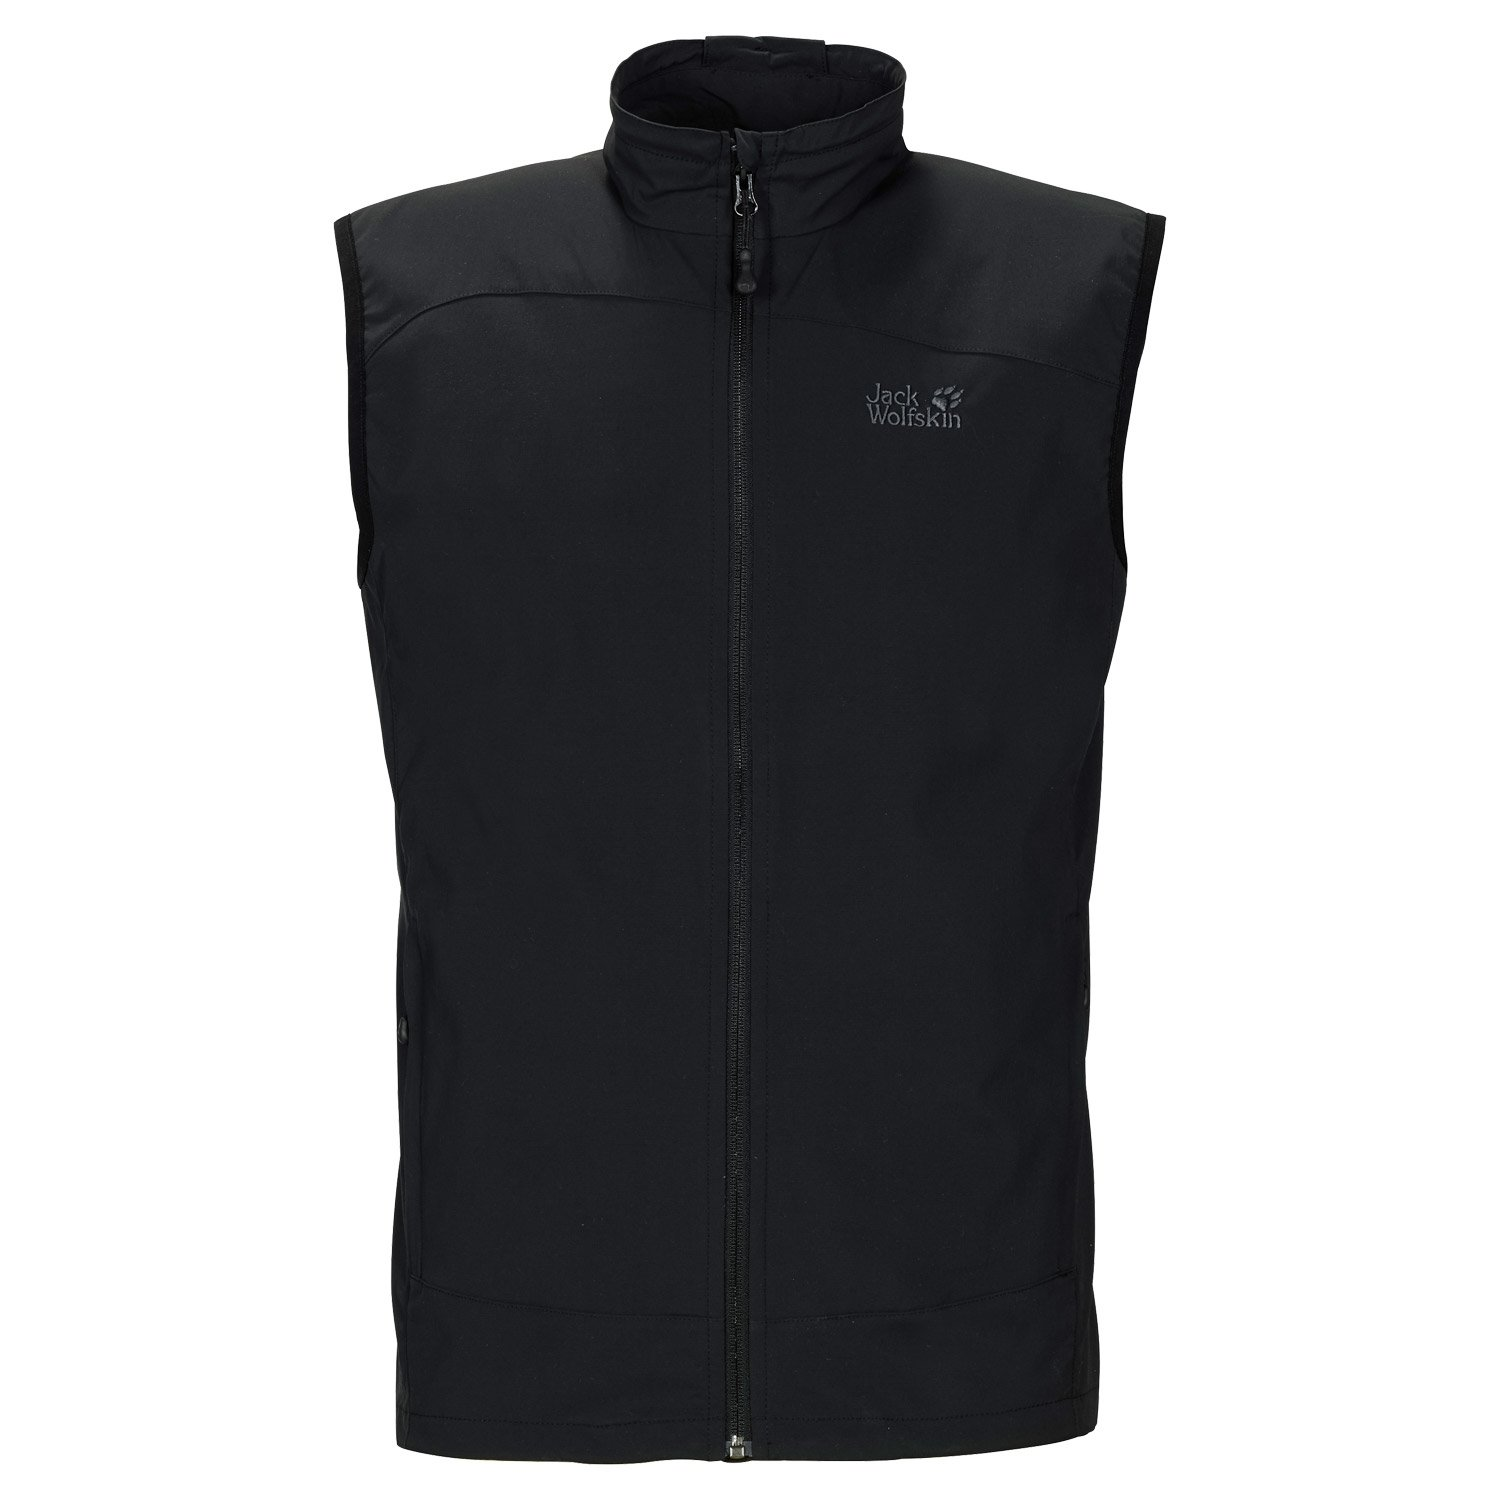 Jack Wolfskin Men's Activate Vest, Black, X-Large by Jack Wolfskin